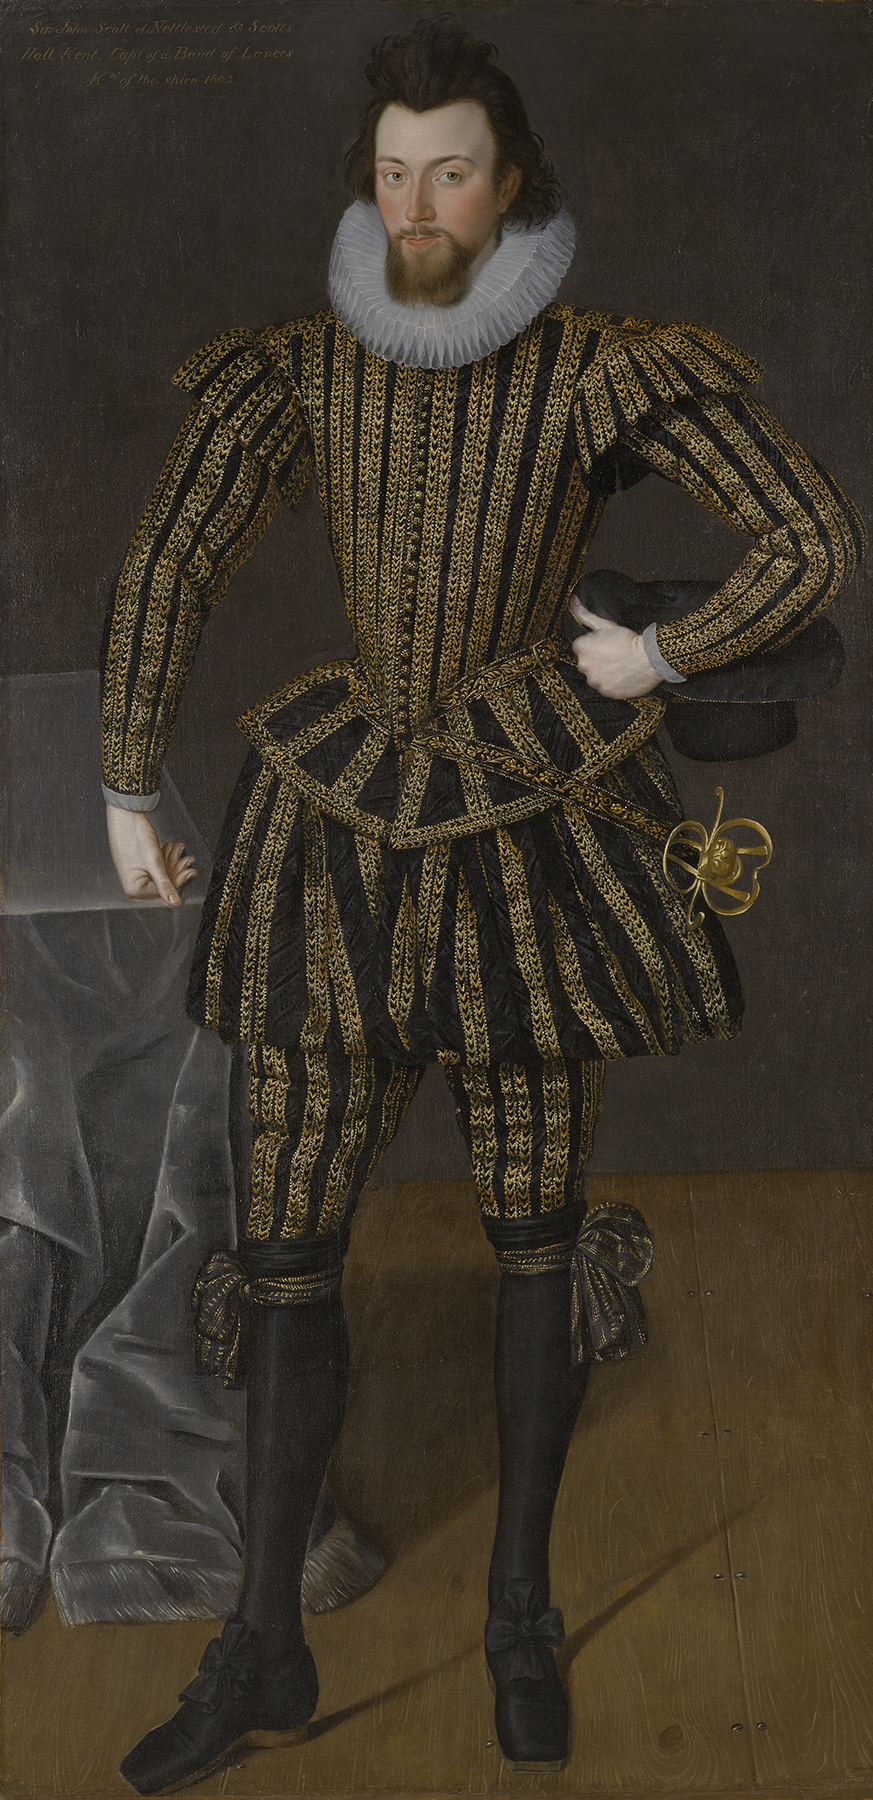 British School, Portrait of a Gentleman, probably Sir John Scott (circa 1564–1616) of Nettlestead, Kent, circa 1600–05, oil on canvas, 77 3/4 x 38 1/4 in., Gift of Mr. and Mrs. James MacLamroc